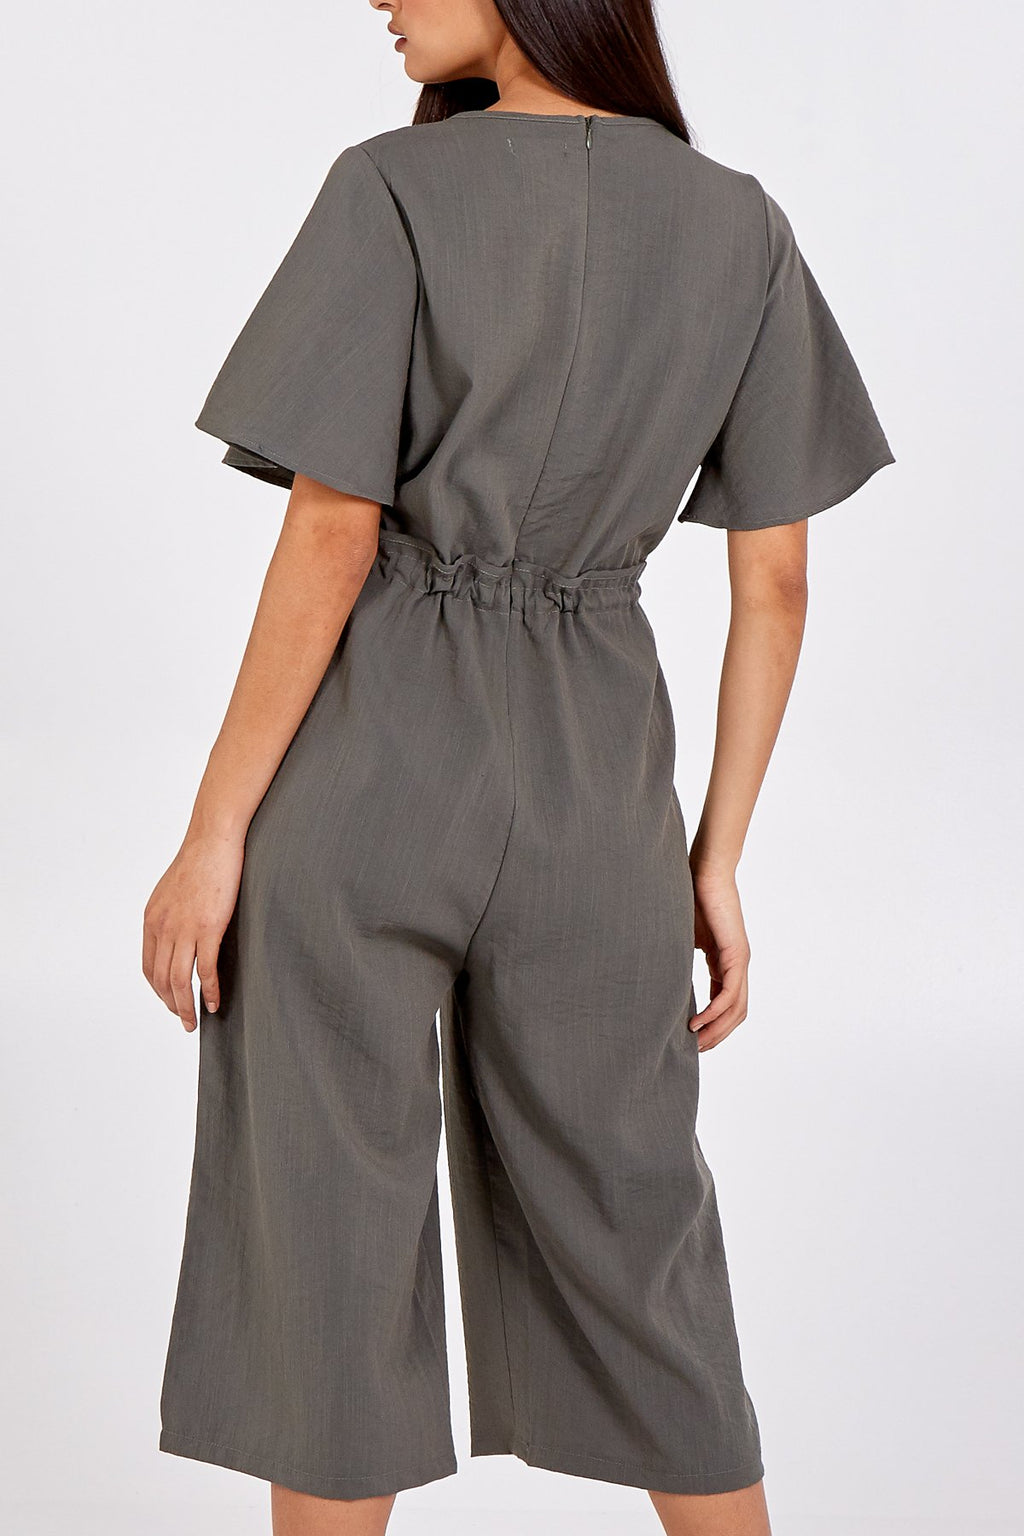 Angel Sleeve Jumpsuit in Khaki